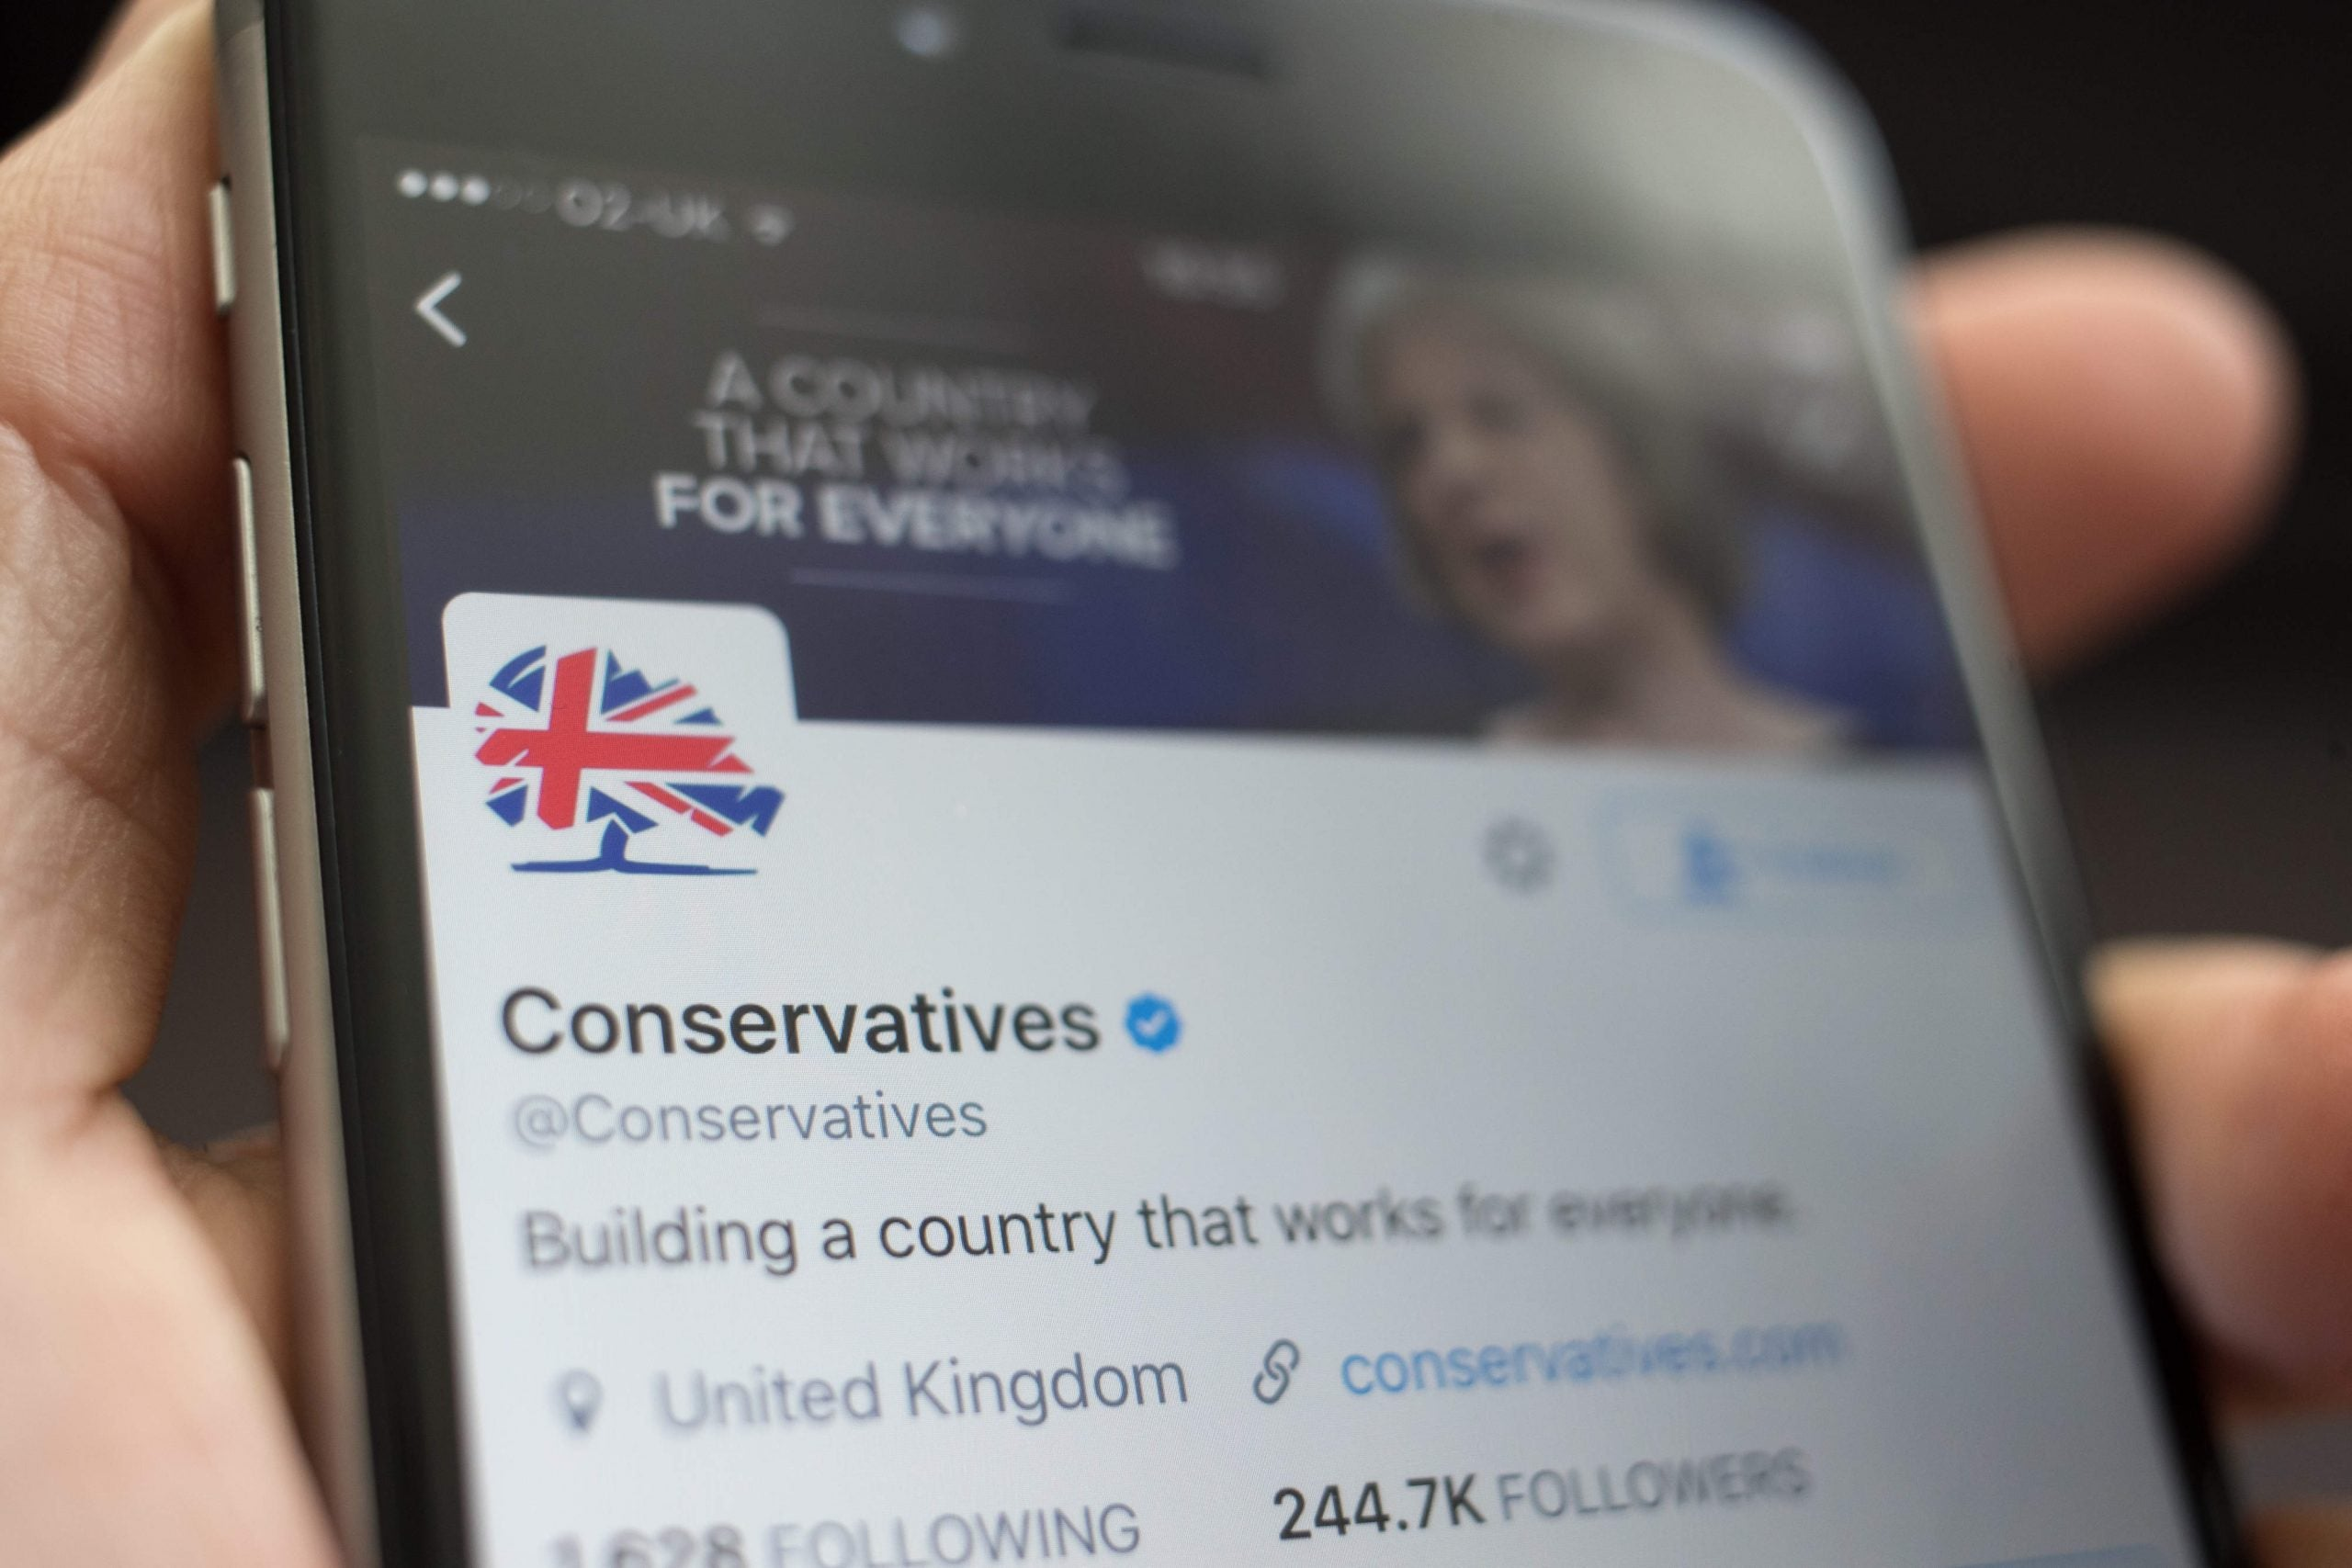 Believe it or not, but the Tories are running an energetic election campaign – you just can't see it